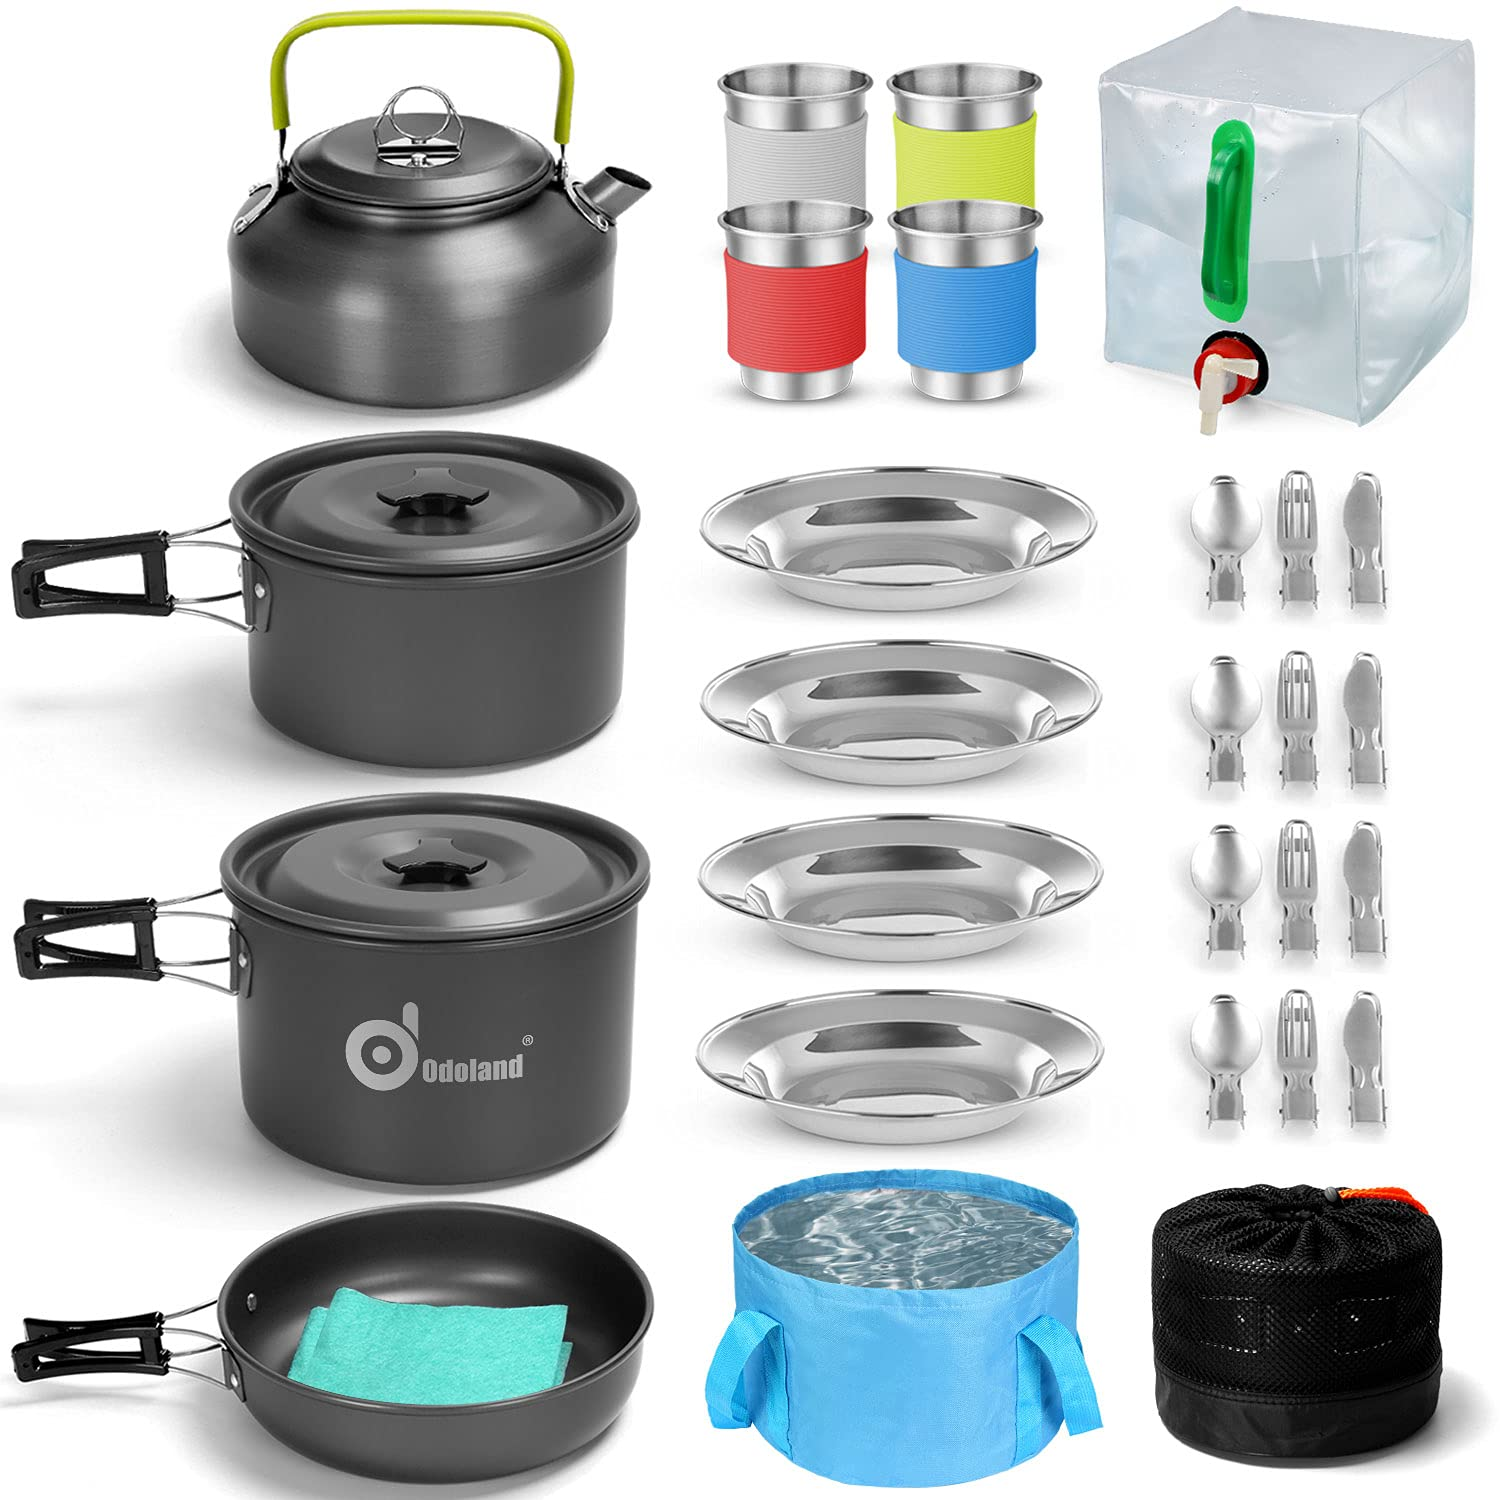 Odoland 29pcs Camping Cookware Mess Kit, Non-Stick Lightweight Pots Pan Kettle, Collapsible Water Container and Bucket, Stainless Steel Cups Plates Forks Knives Spoons for Outdoor Backpacking Picnic